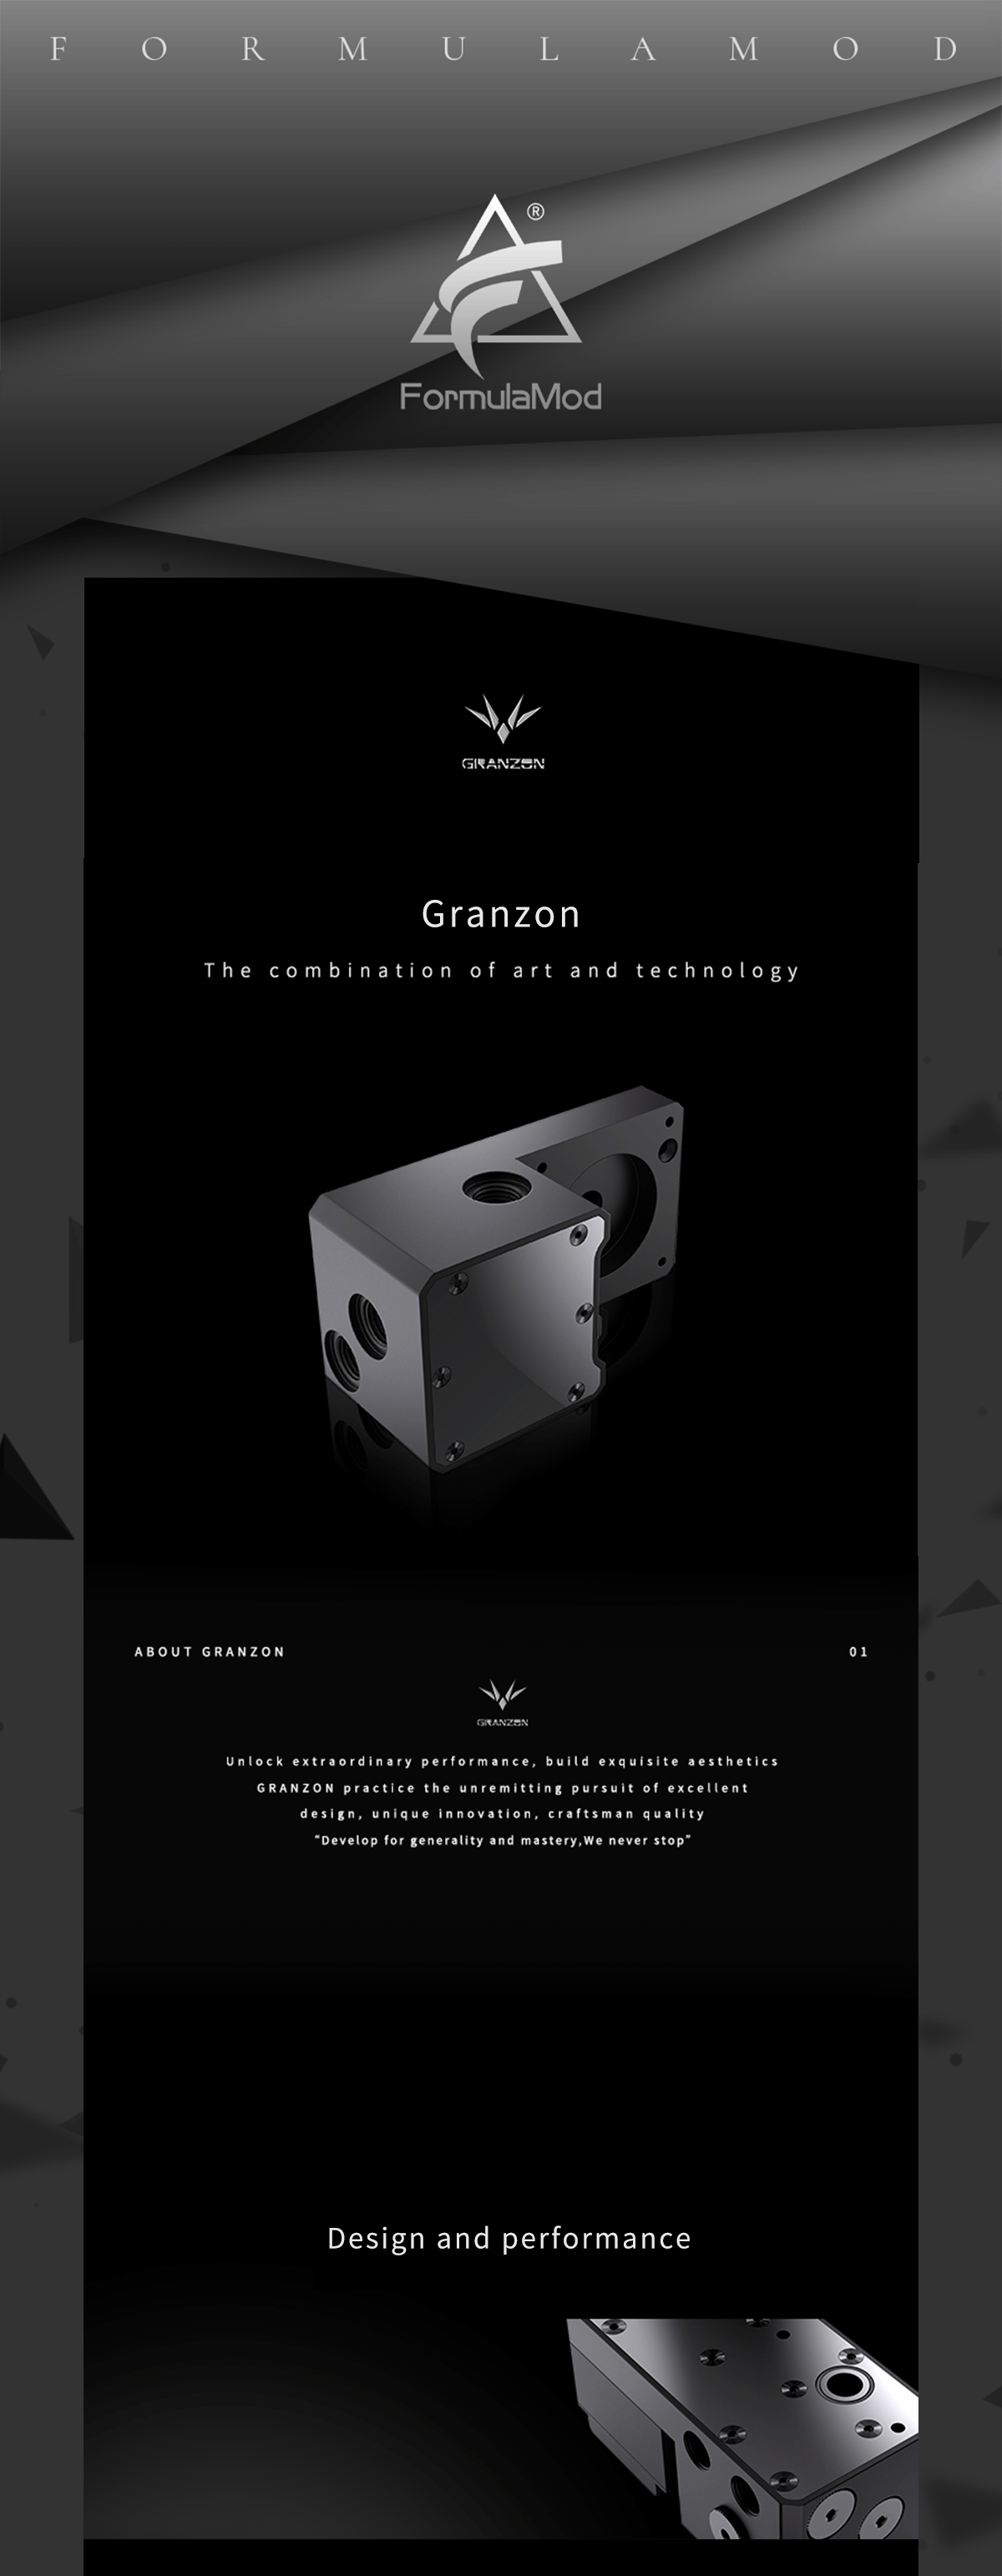 Granzon GY-M Pump Radiator Bridge Module , For GH Series Radiator To PMD3 Pump Connect , ITX Gamer Case Reservoir Water Cooling